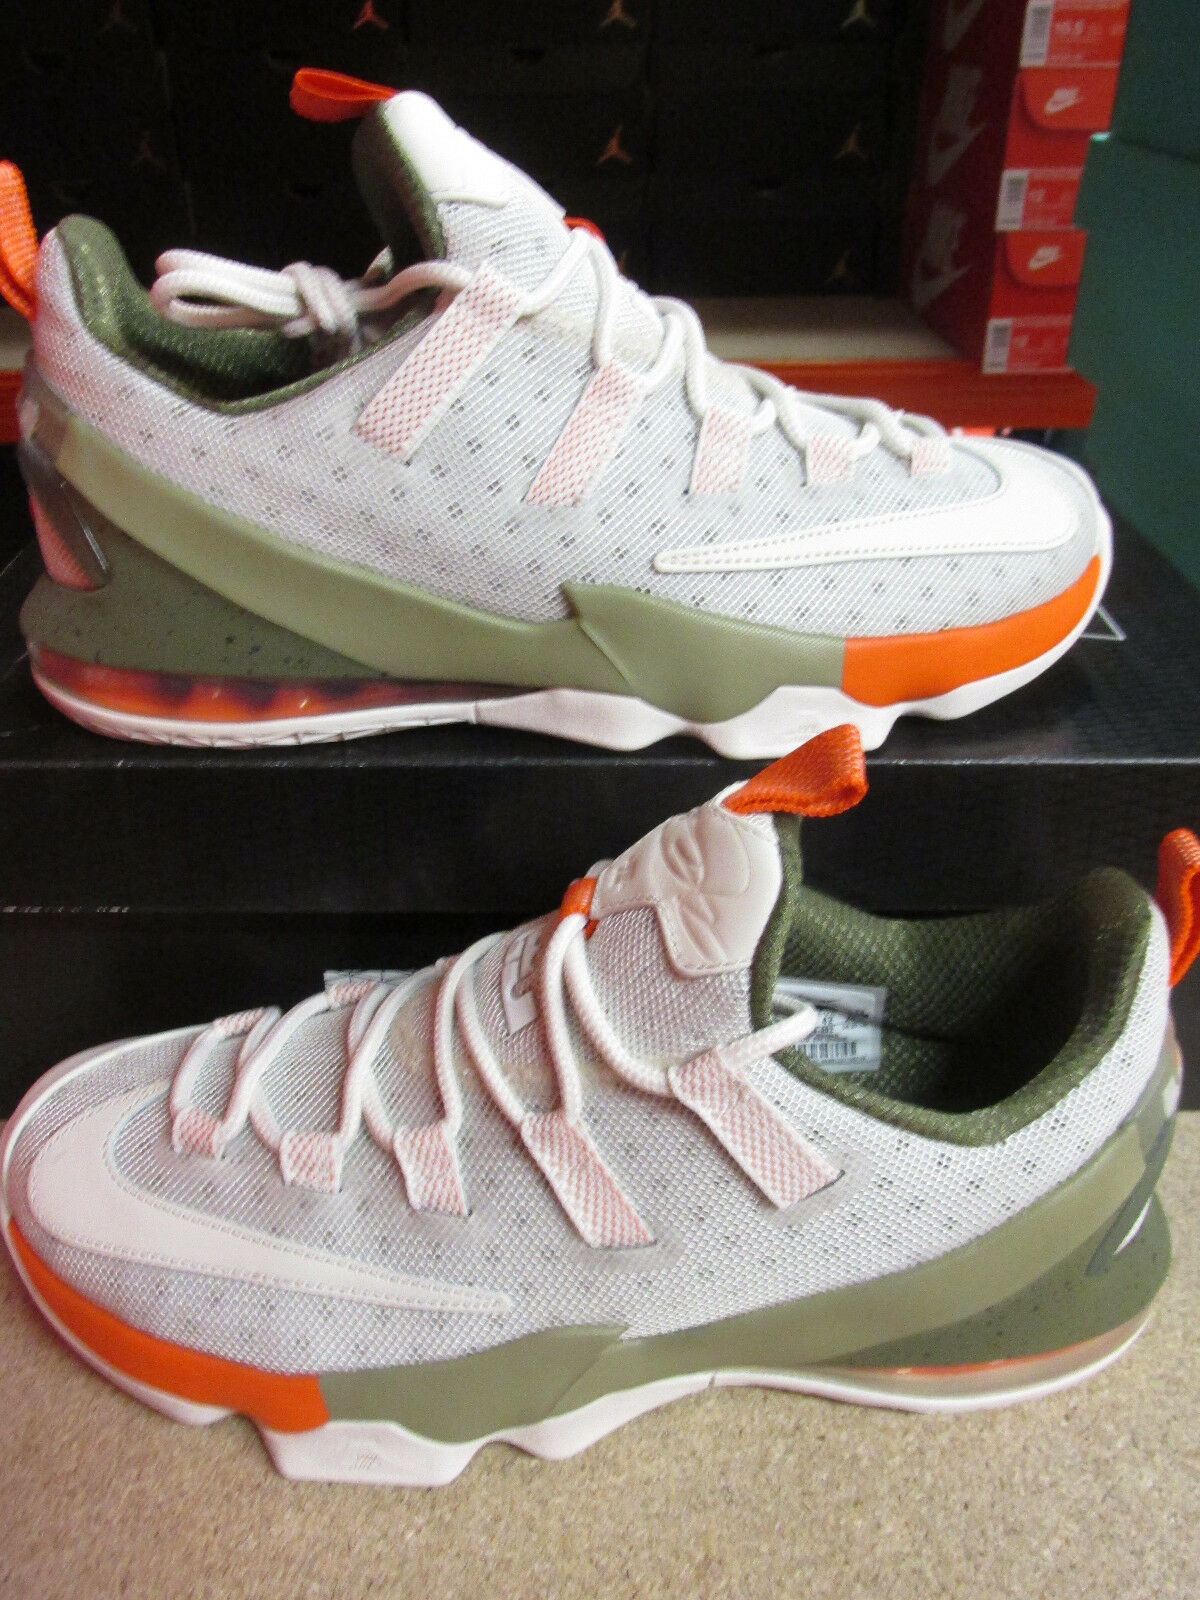 NIke Lebron XIII Low Mens Basketball Trainers 849783 002 Sneakers Shoes